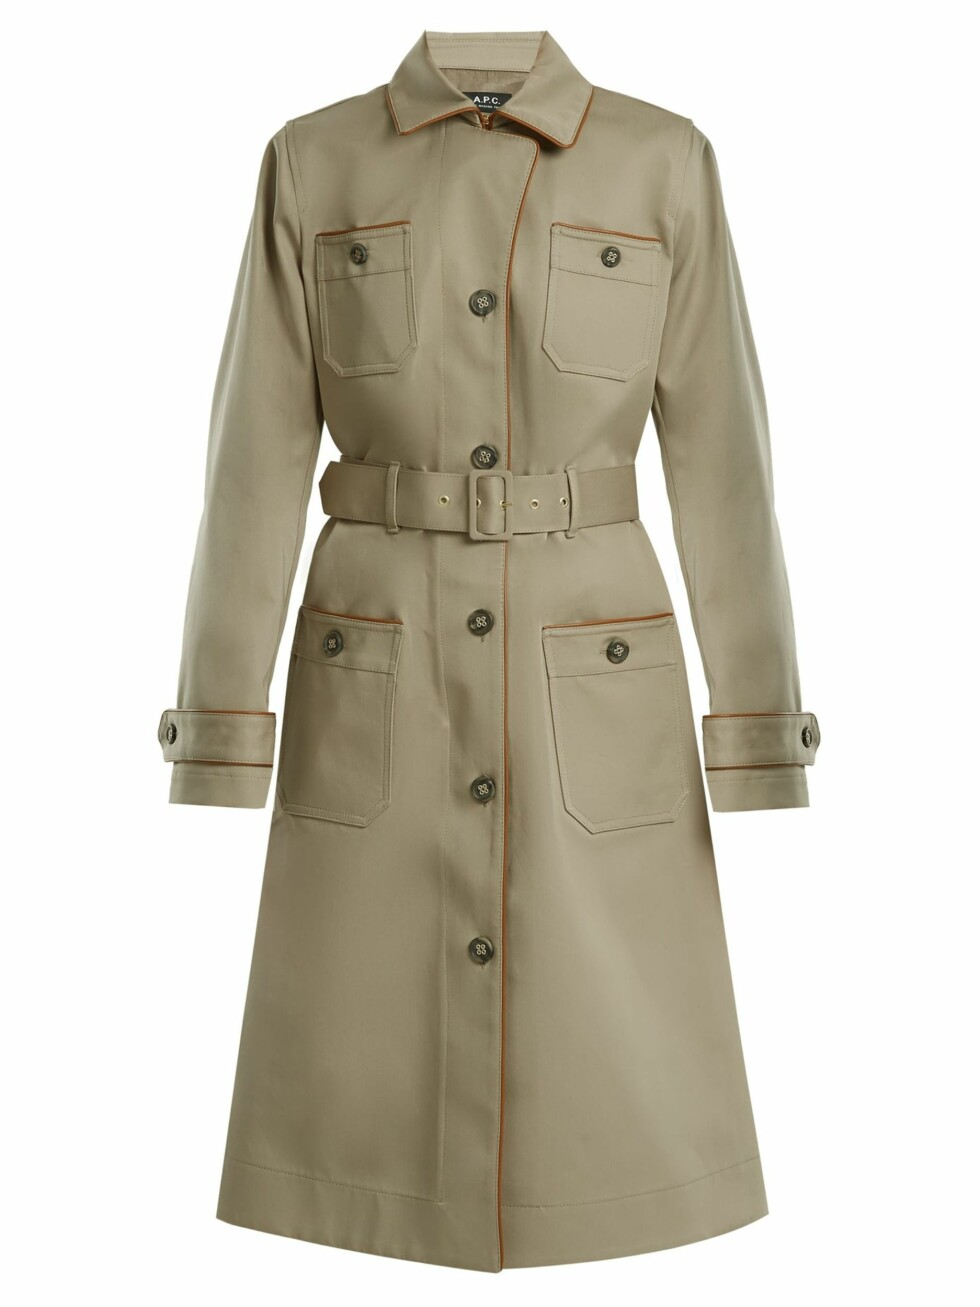 Trenchcoat fra A.P.C. |4340,-| https://www.matchesfashion.com/intl/products/A-P-C--Pauline-point-collar-cotton-blend-trench-coat-1189883